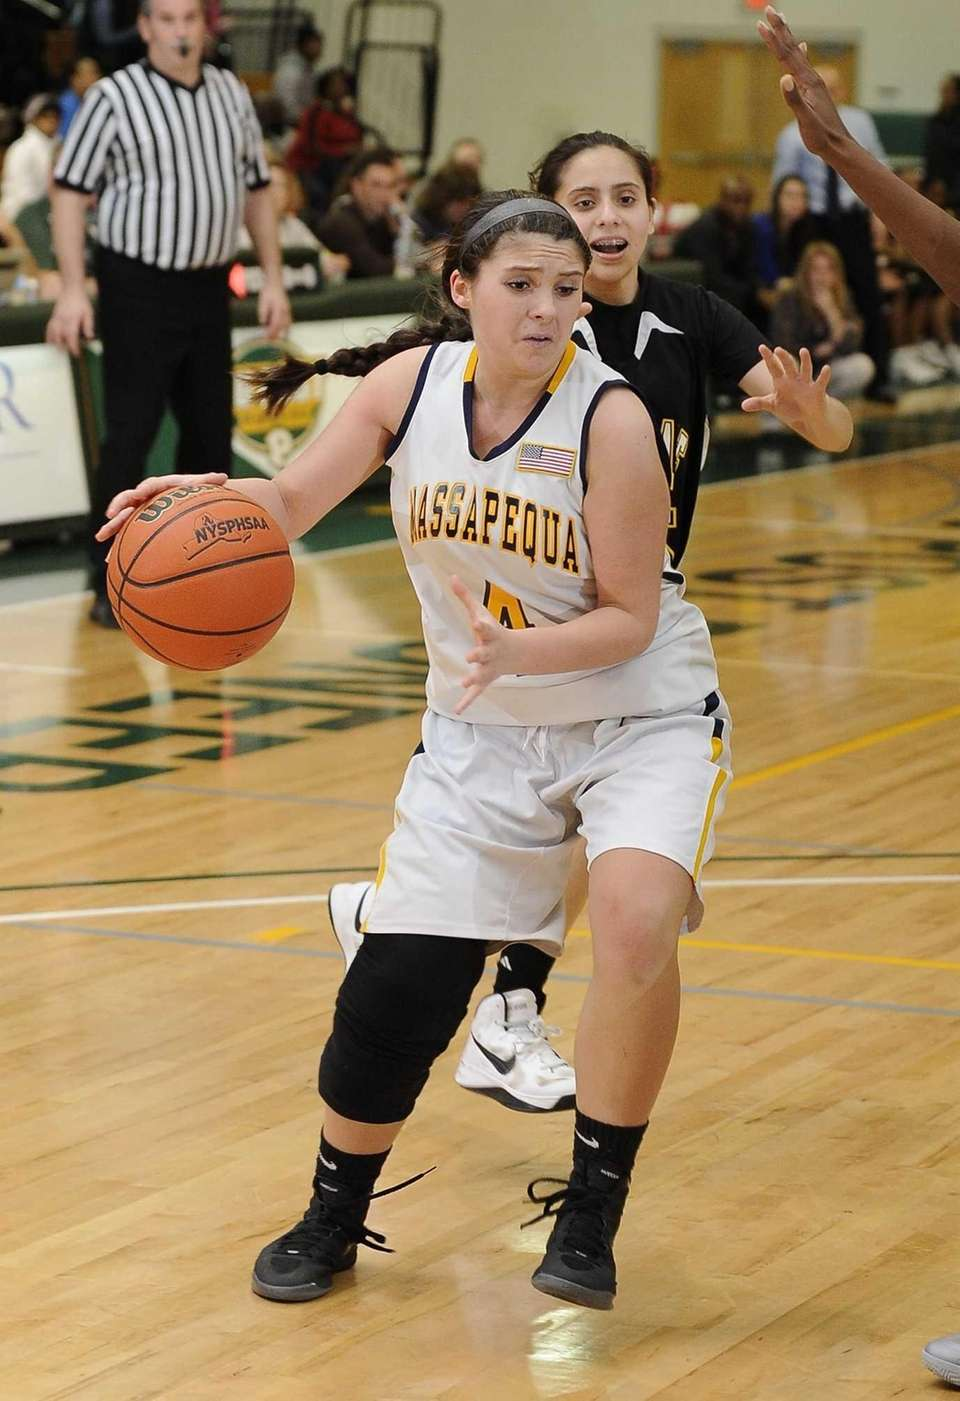 Massapequa's Sabrina Fregosi drives to the basket against